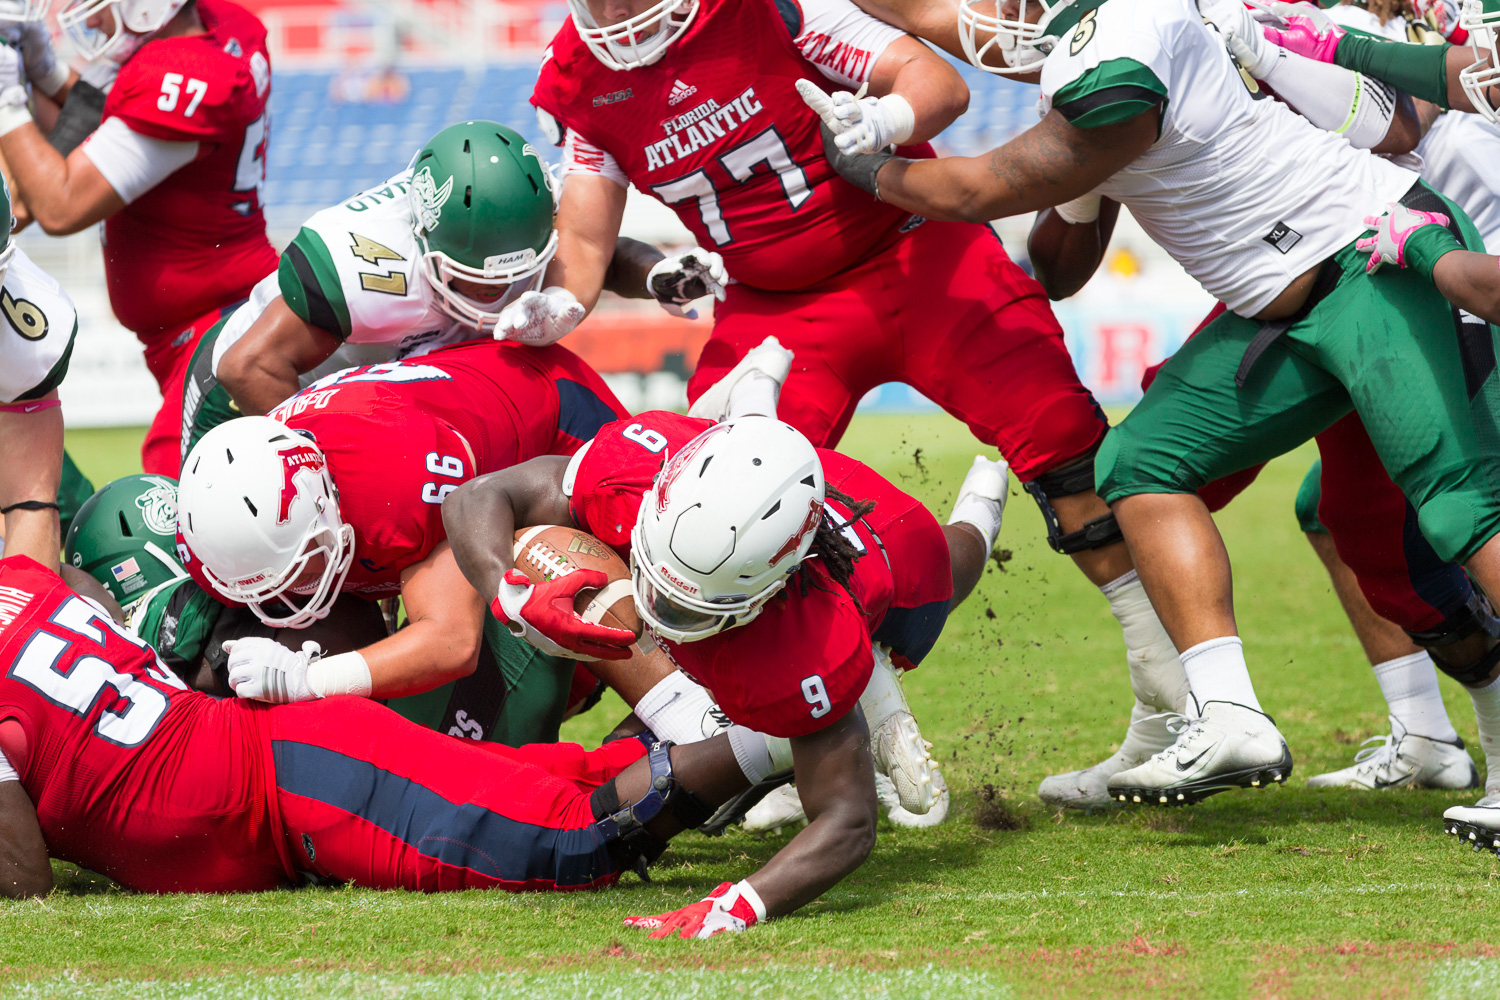 FAU junior running back Greg Howell (9) dives into the endzone. Howell had three touchdowns against Charlotte, making him the first FAU player to rush for three touchdowns in a single game since 2011.